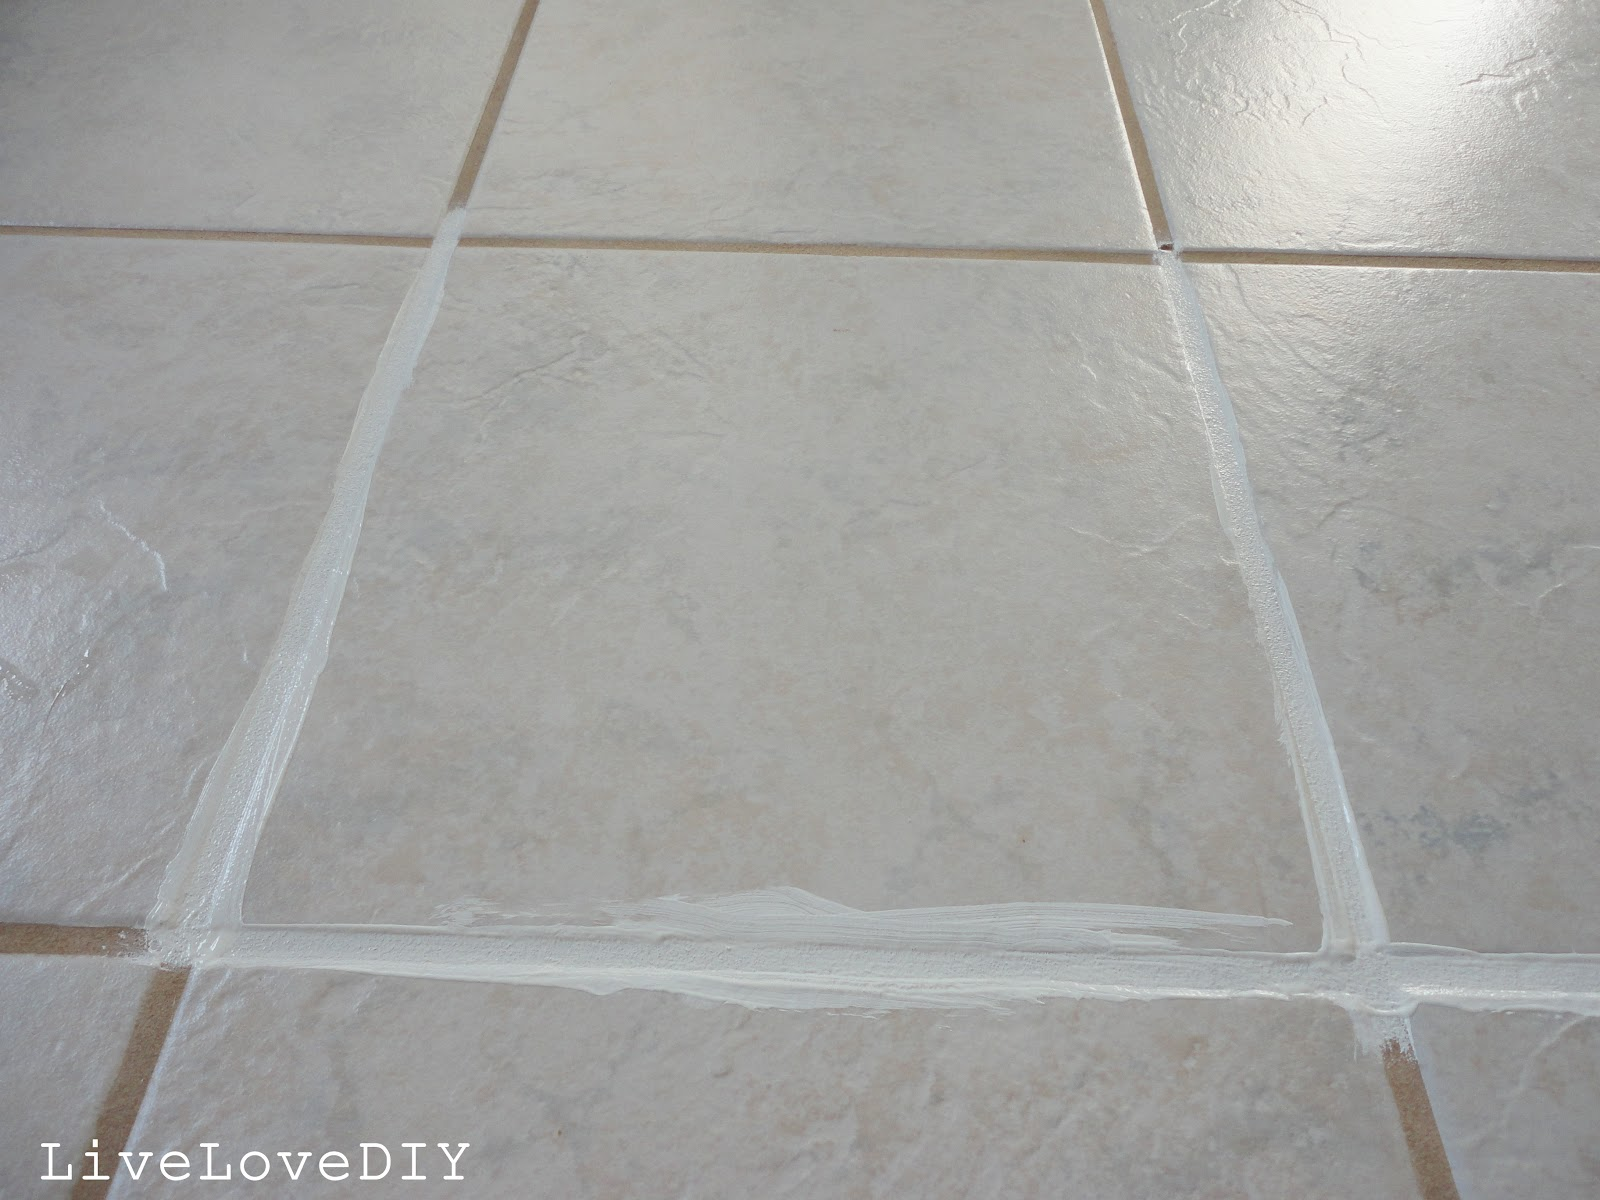 Livelovediy how to restore dirty tile grout dailygadgetfo Image collections